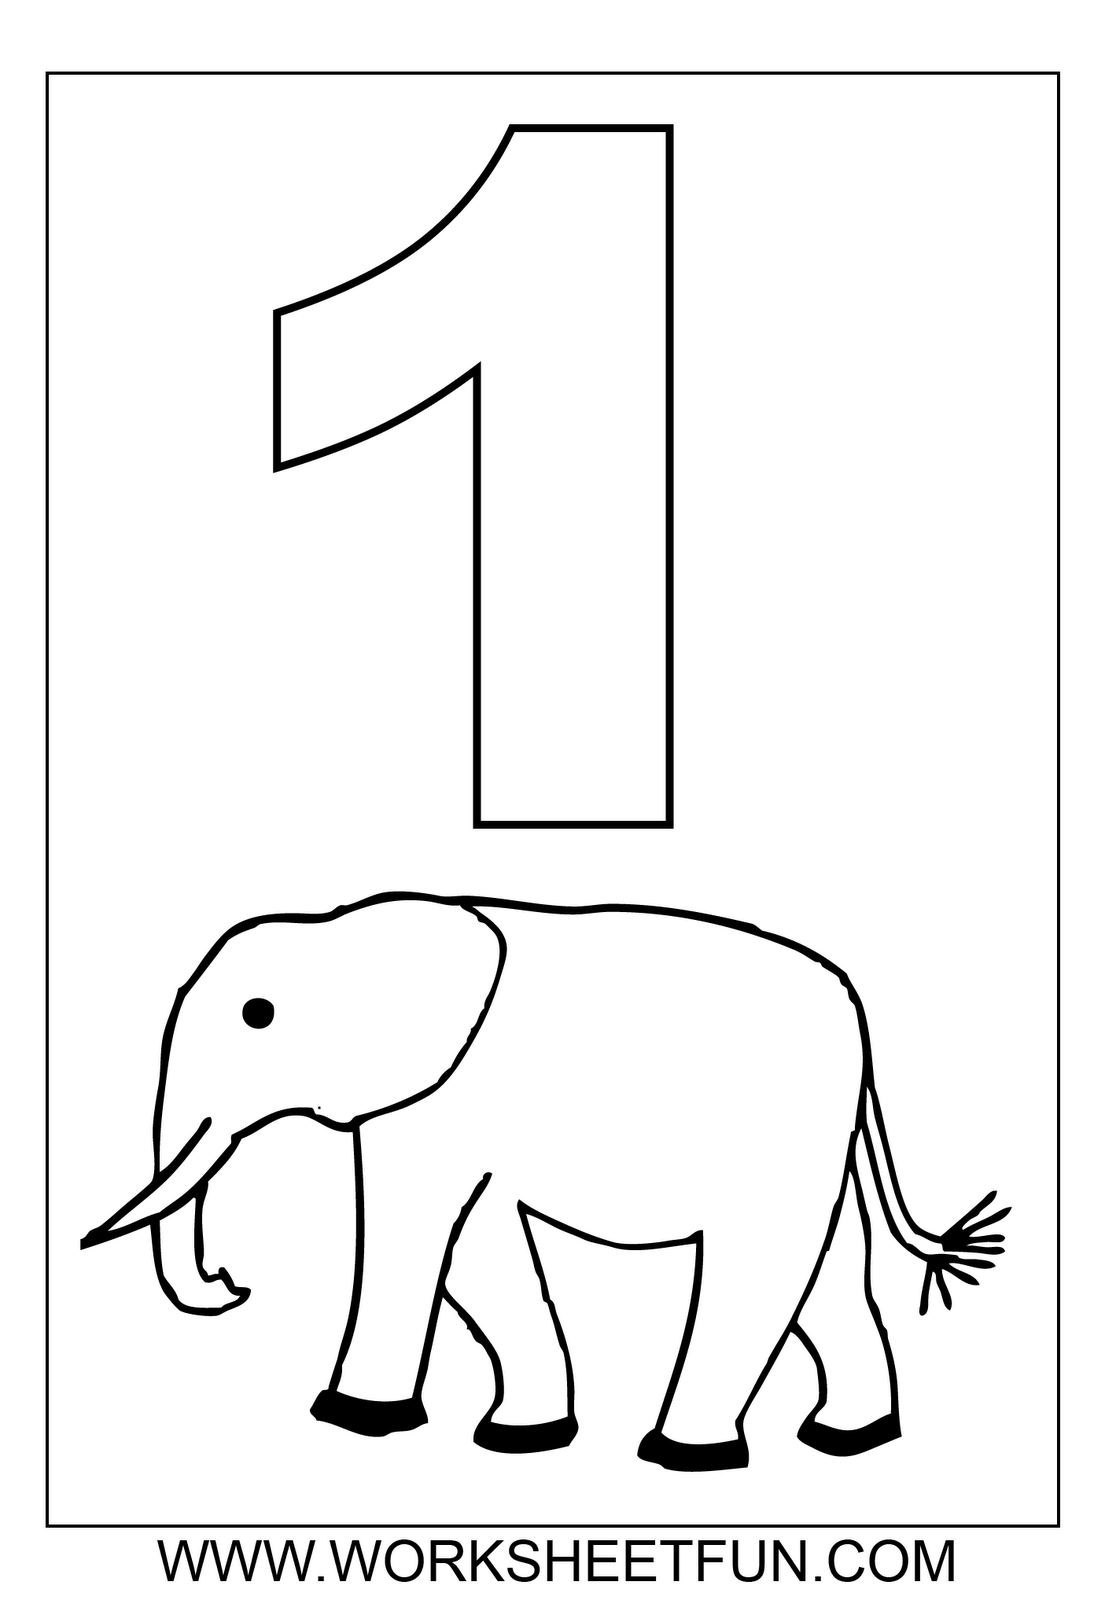 Numbers Coloring Worksheets Counting Number 1 Elephant